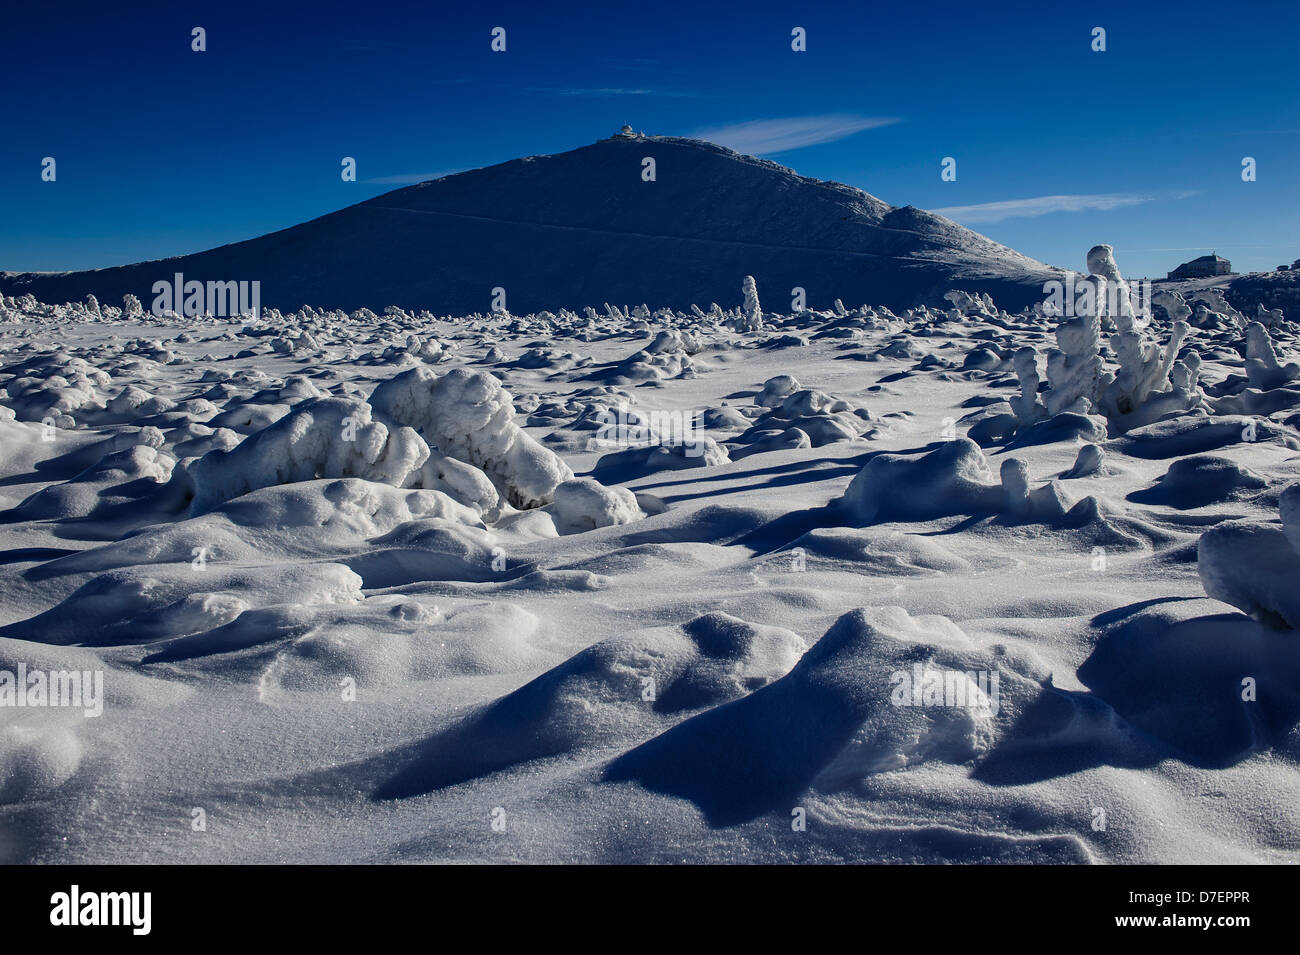 View of the Sniezka in the Karkonosze mountains, Poland. - Stock Image